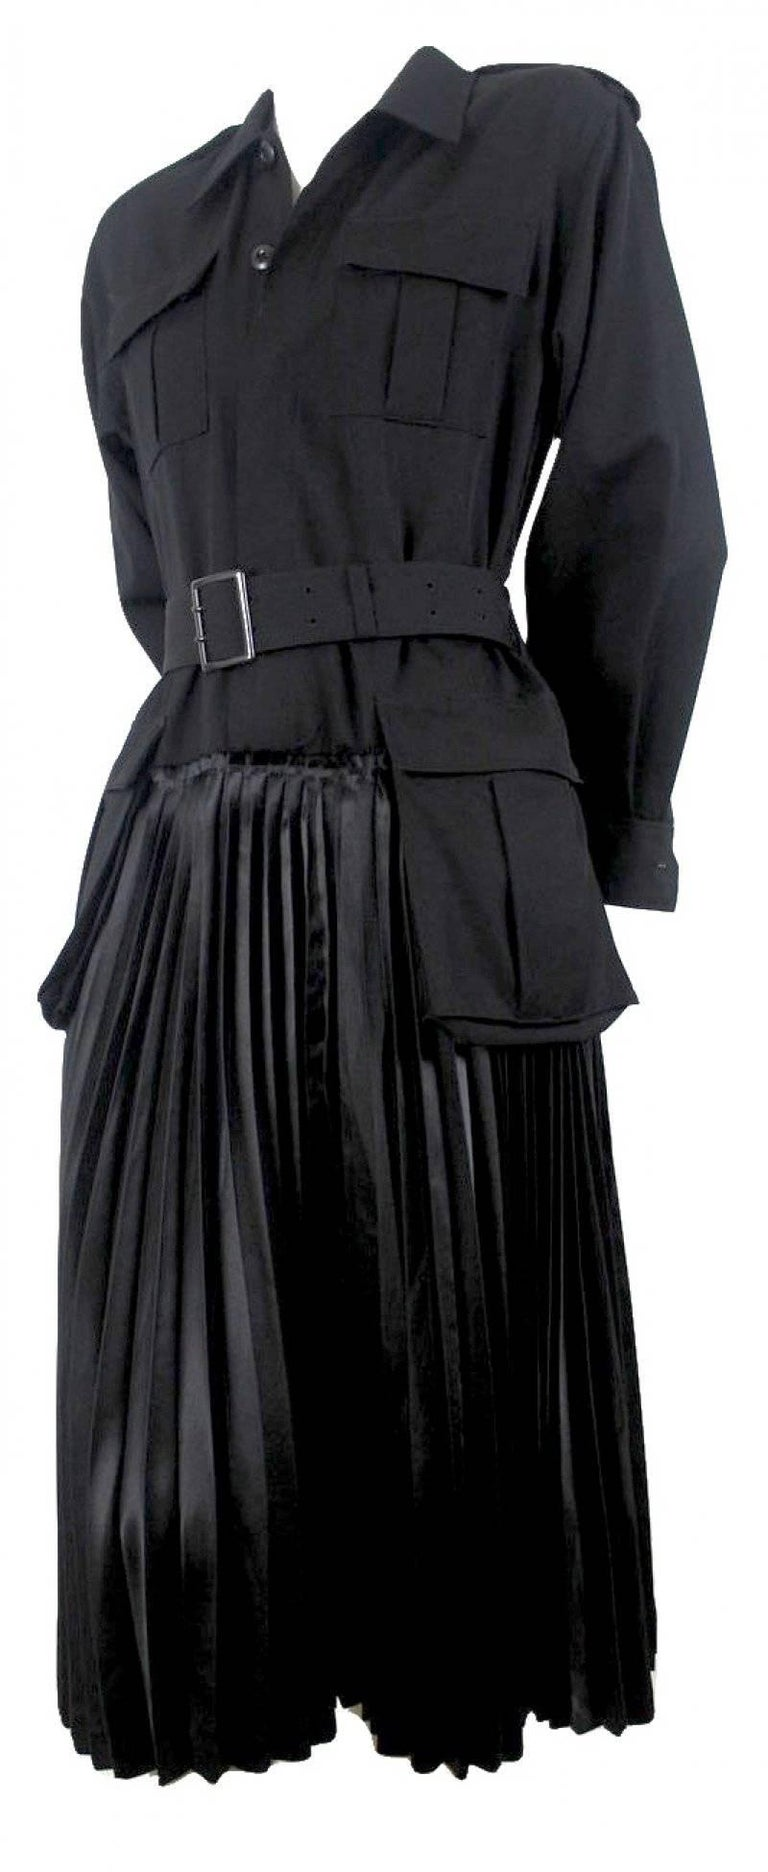 Junya Watanabe Comme des Garcons 2006 Collection Military Dress Labelled size S Excellent Condition